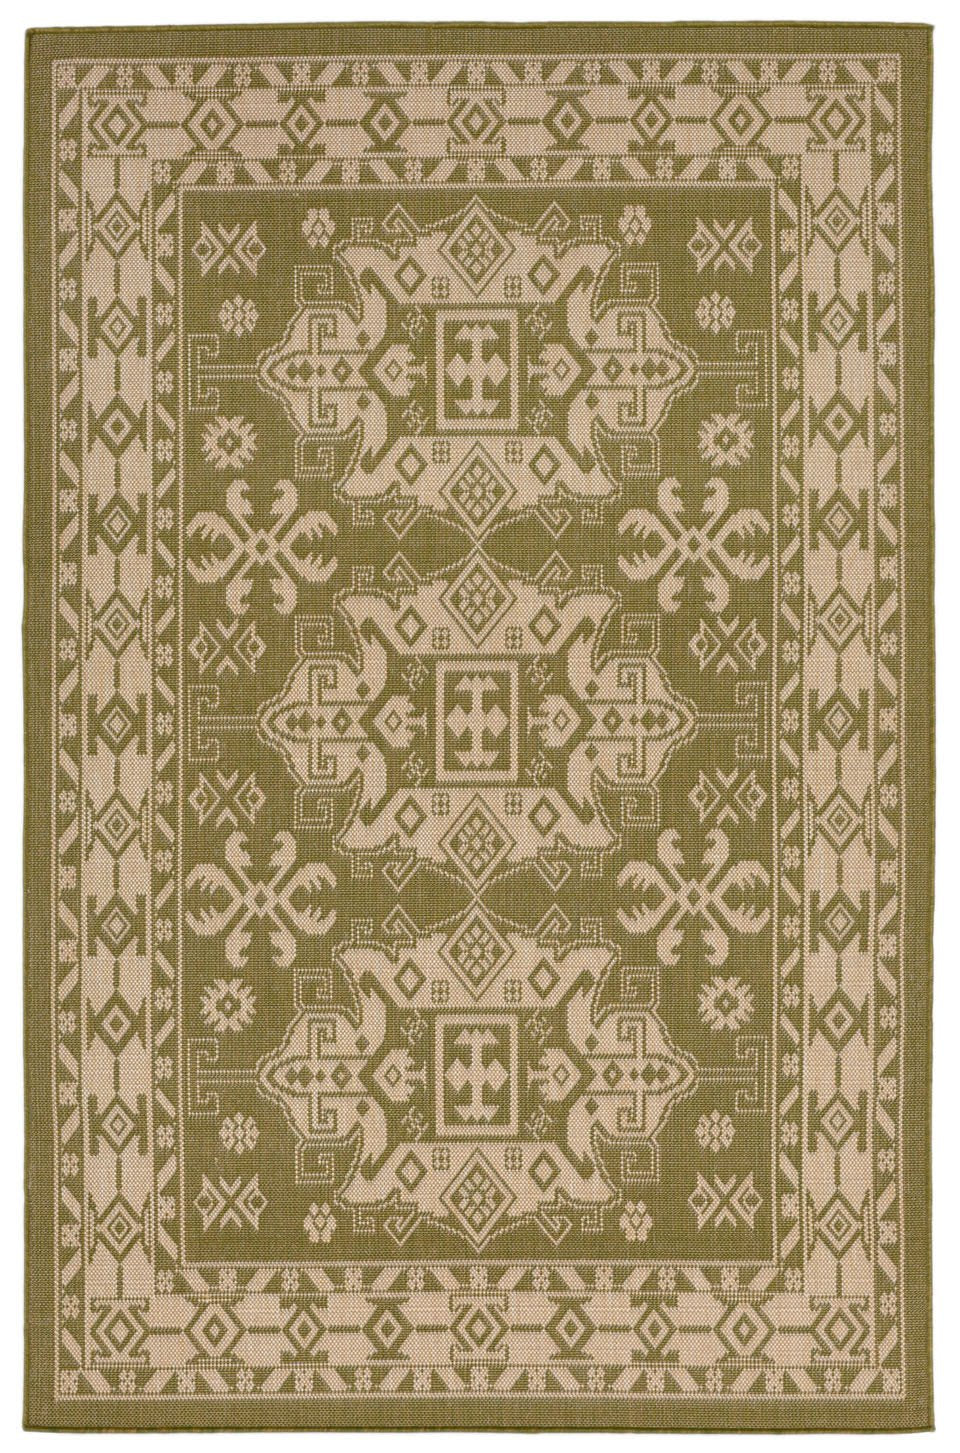 Trans-Ocean Imports TER58178176 Terrace Collection Green Finish Everywear Rug from Trans-Ocean